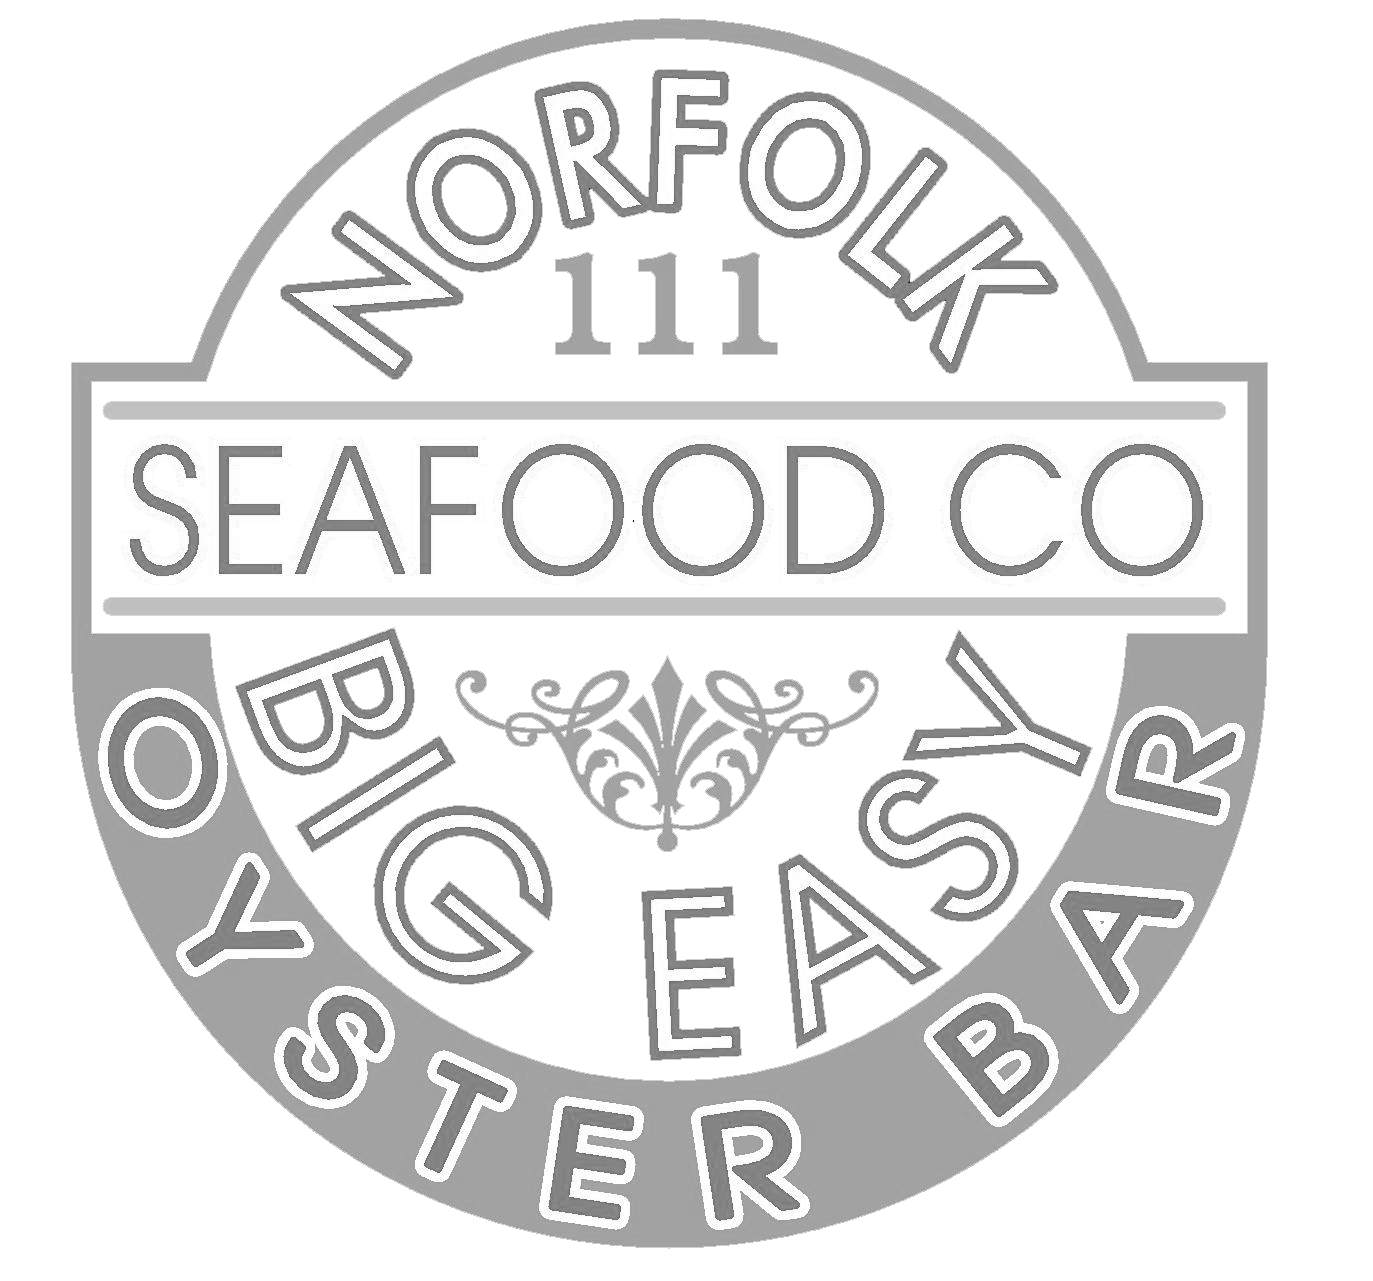 Norfolk Seafood Co. & Big Easy Oyster Bar